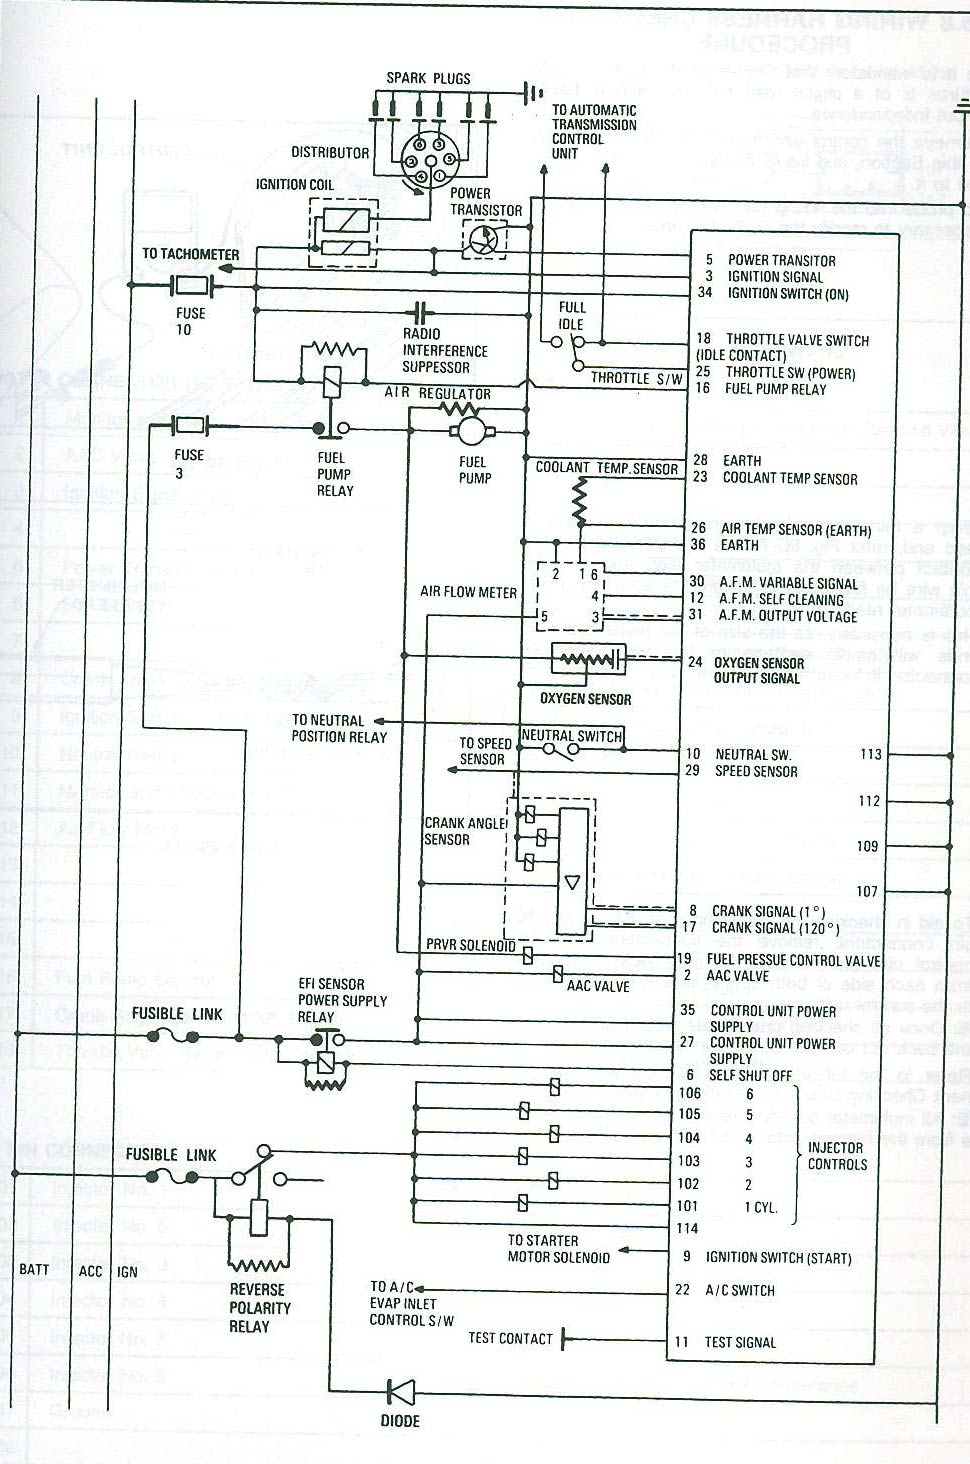 ecuwiring vl commodore wiring diagram vn commodore \u2022 wiring diagrams j vl commodore ecu wiring diagram at virtualis.co